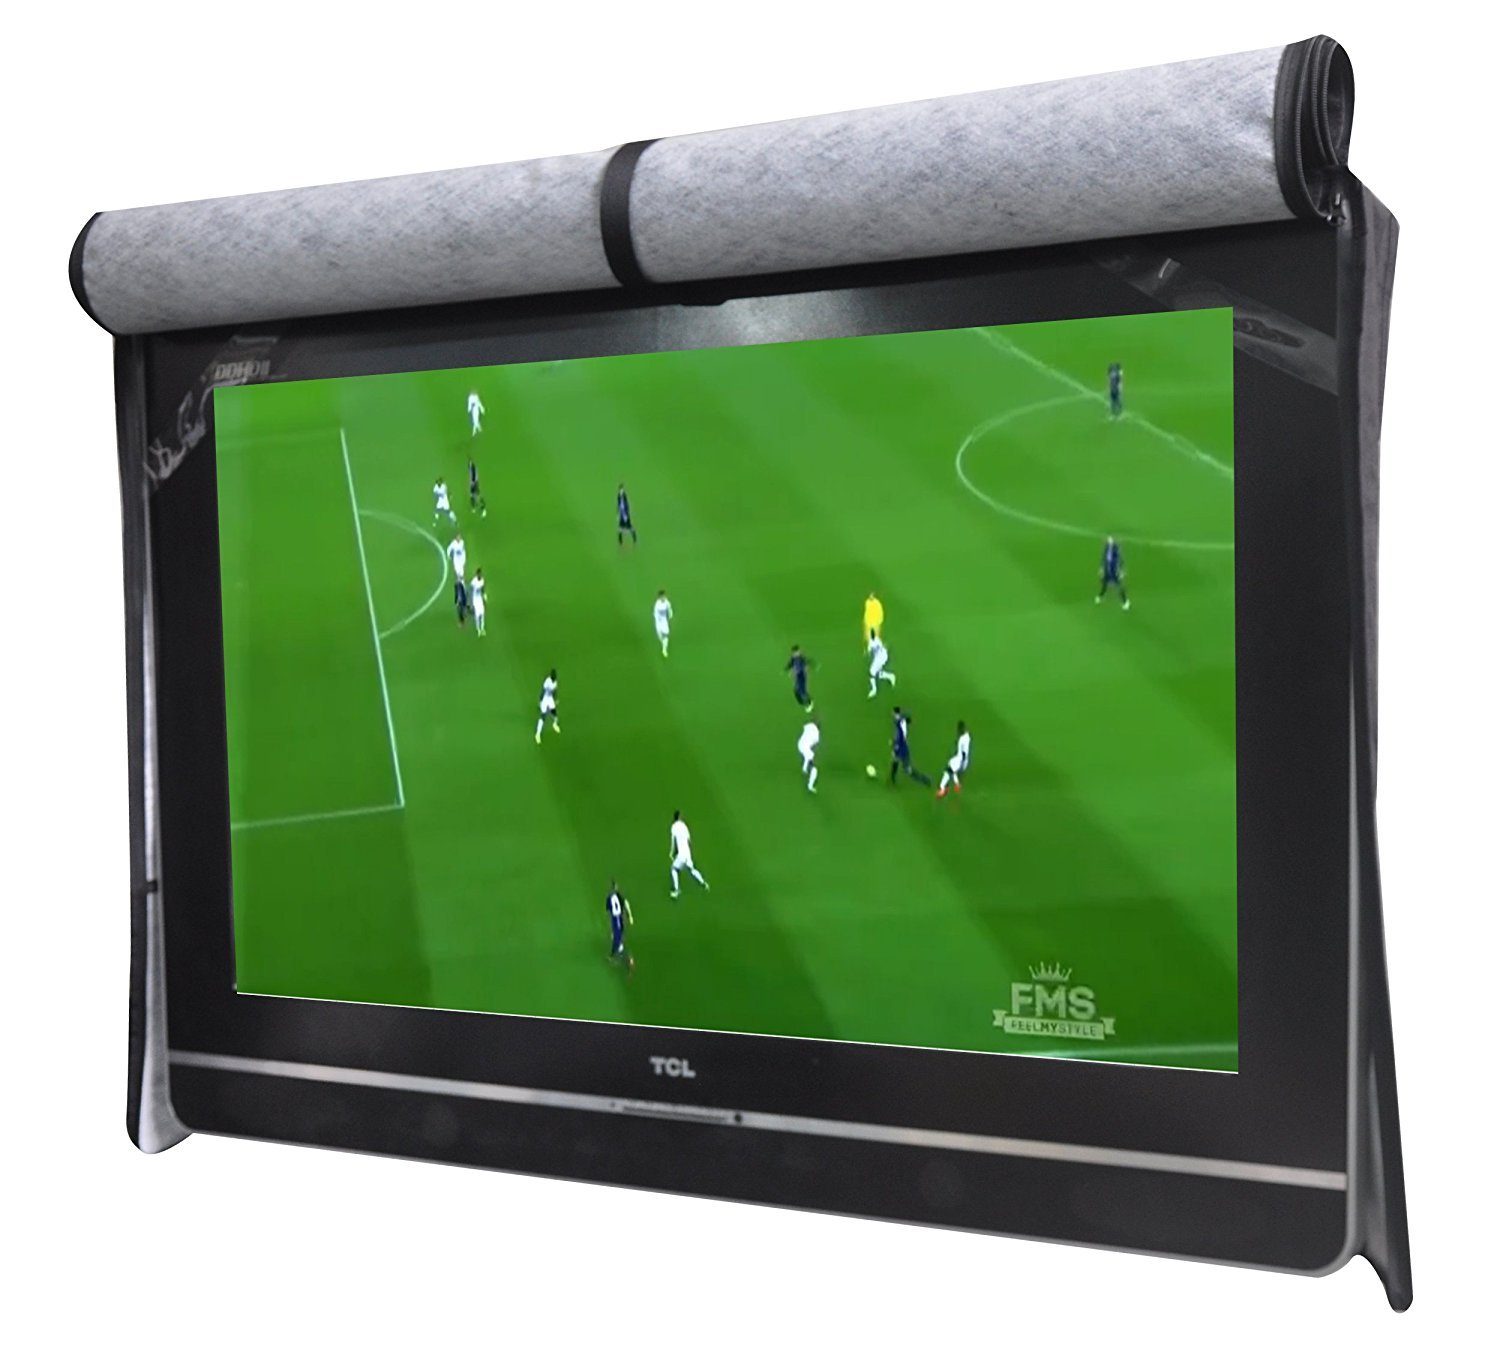 Black Scratch Resistant liner protect LED Screen best-Compatible with Standard Mounts and Stands A1Cover Outdoor 40-43TV SET Cover